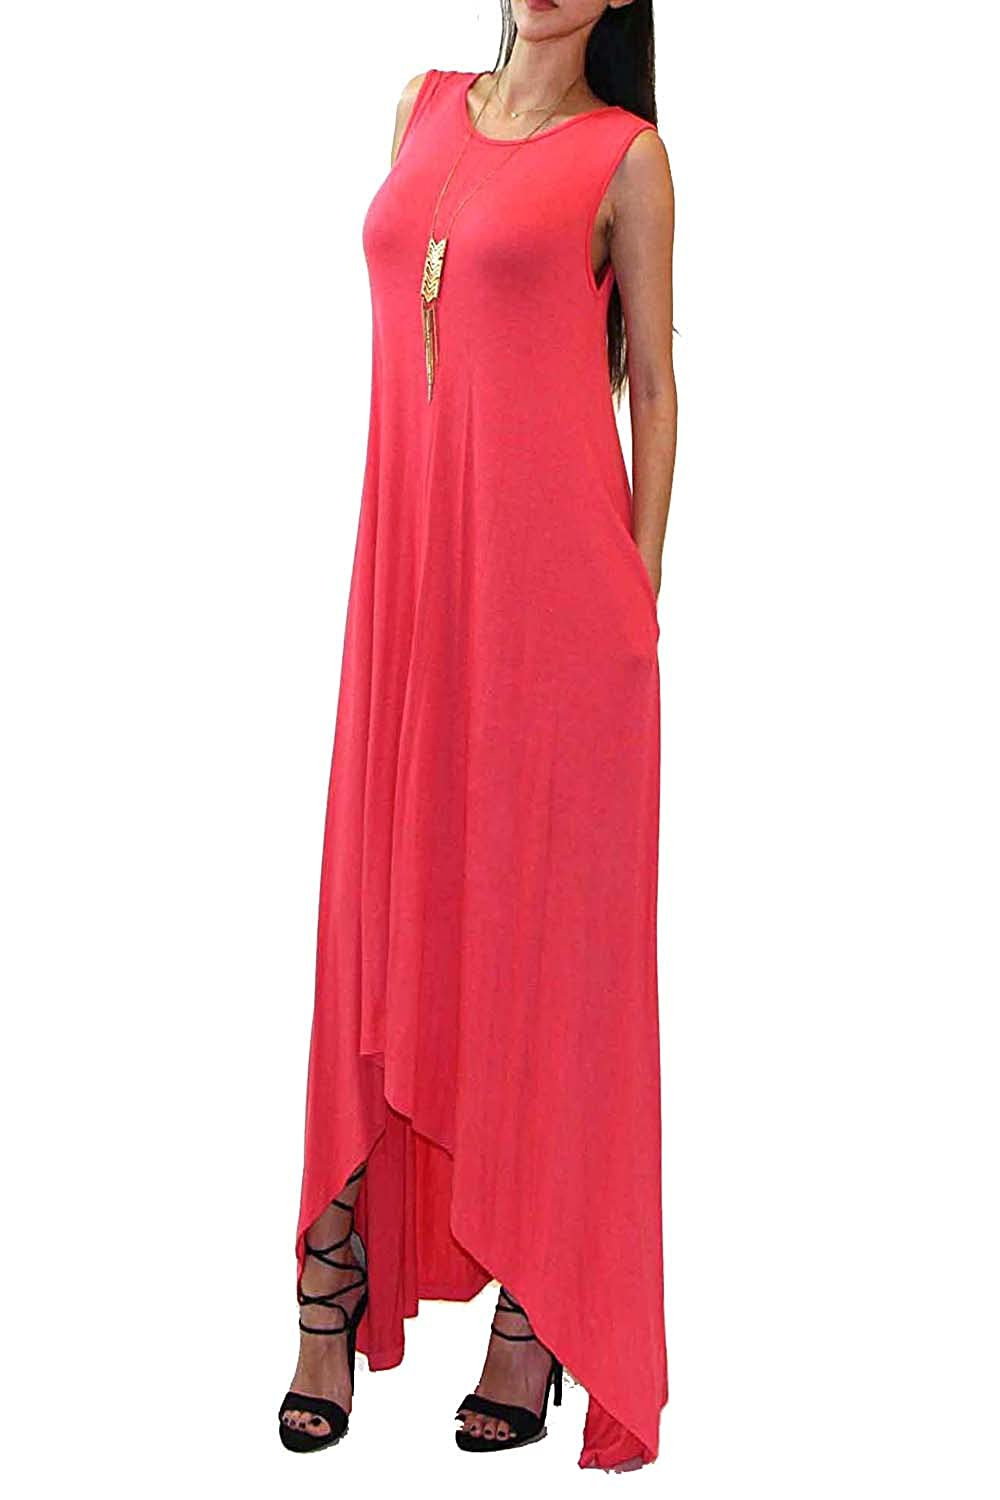 af76f21364 Vivicastle USA Batwing Oversized Loose Summer Tank Scoop Neck Pocket Long  Maxi Dress at Amazon Women's Clothing store: